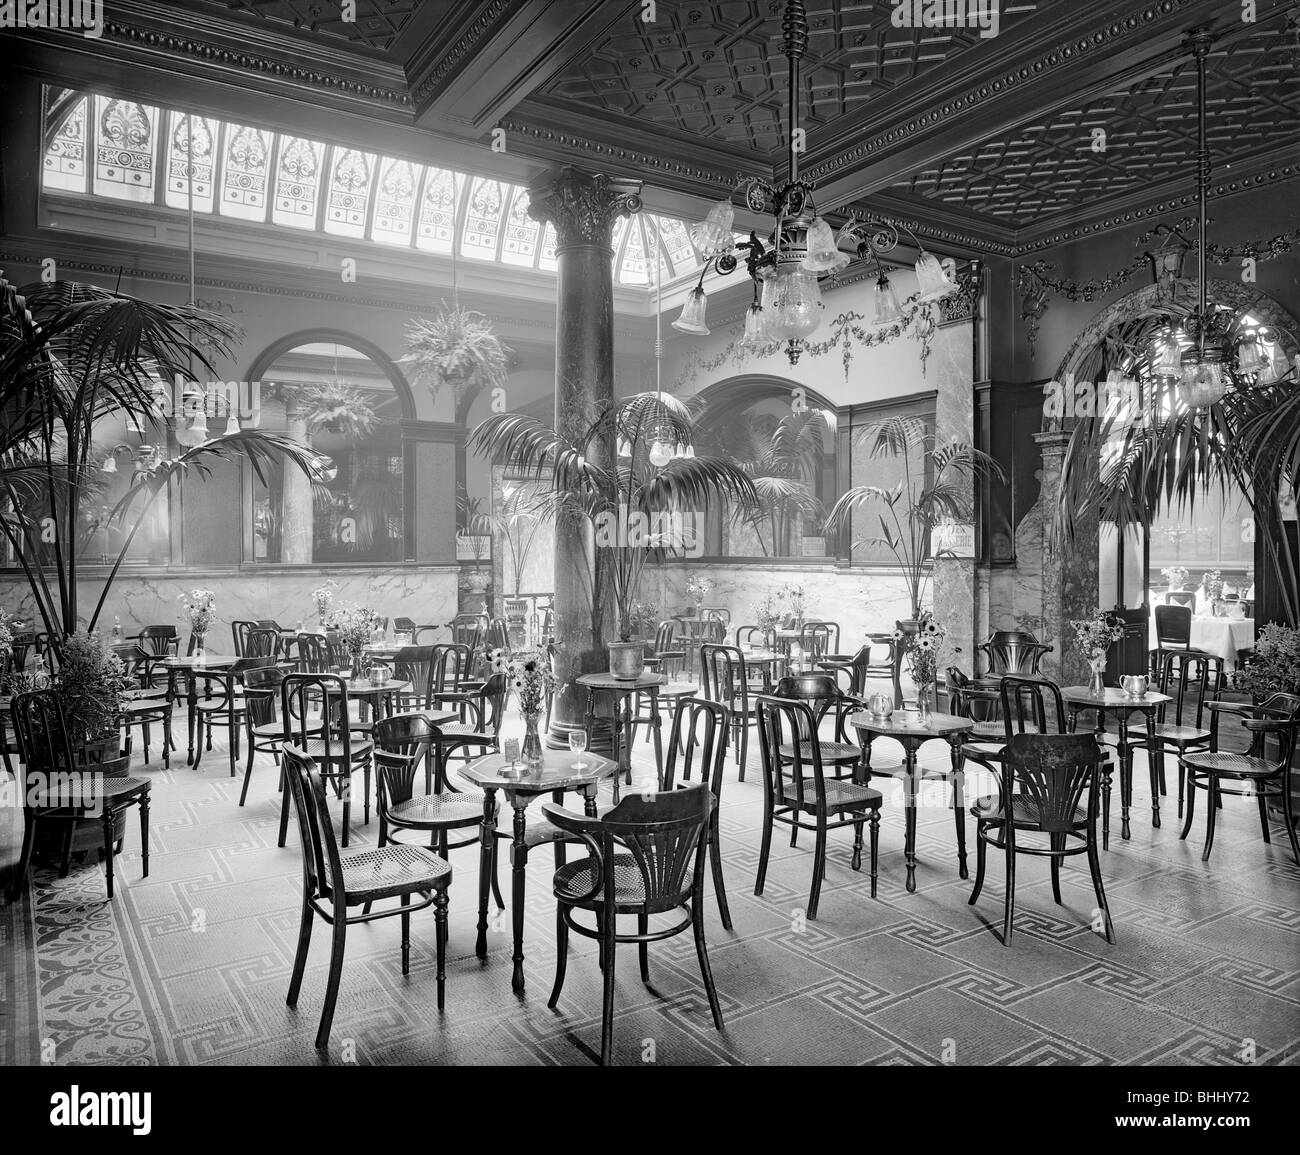 The winter garden in the Monico Restaurant. Shaftesbury Avenue, Westminster, London, 1915. Artist: Bedford Lemere - Stock Image